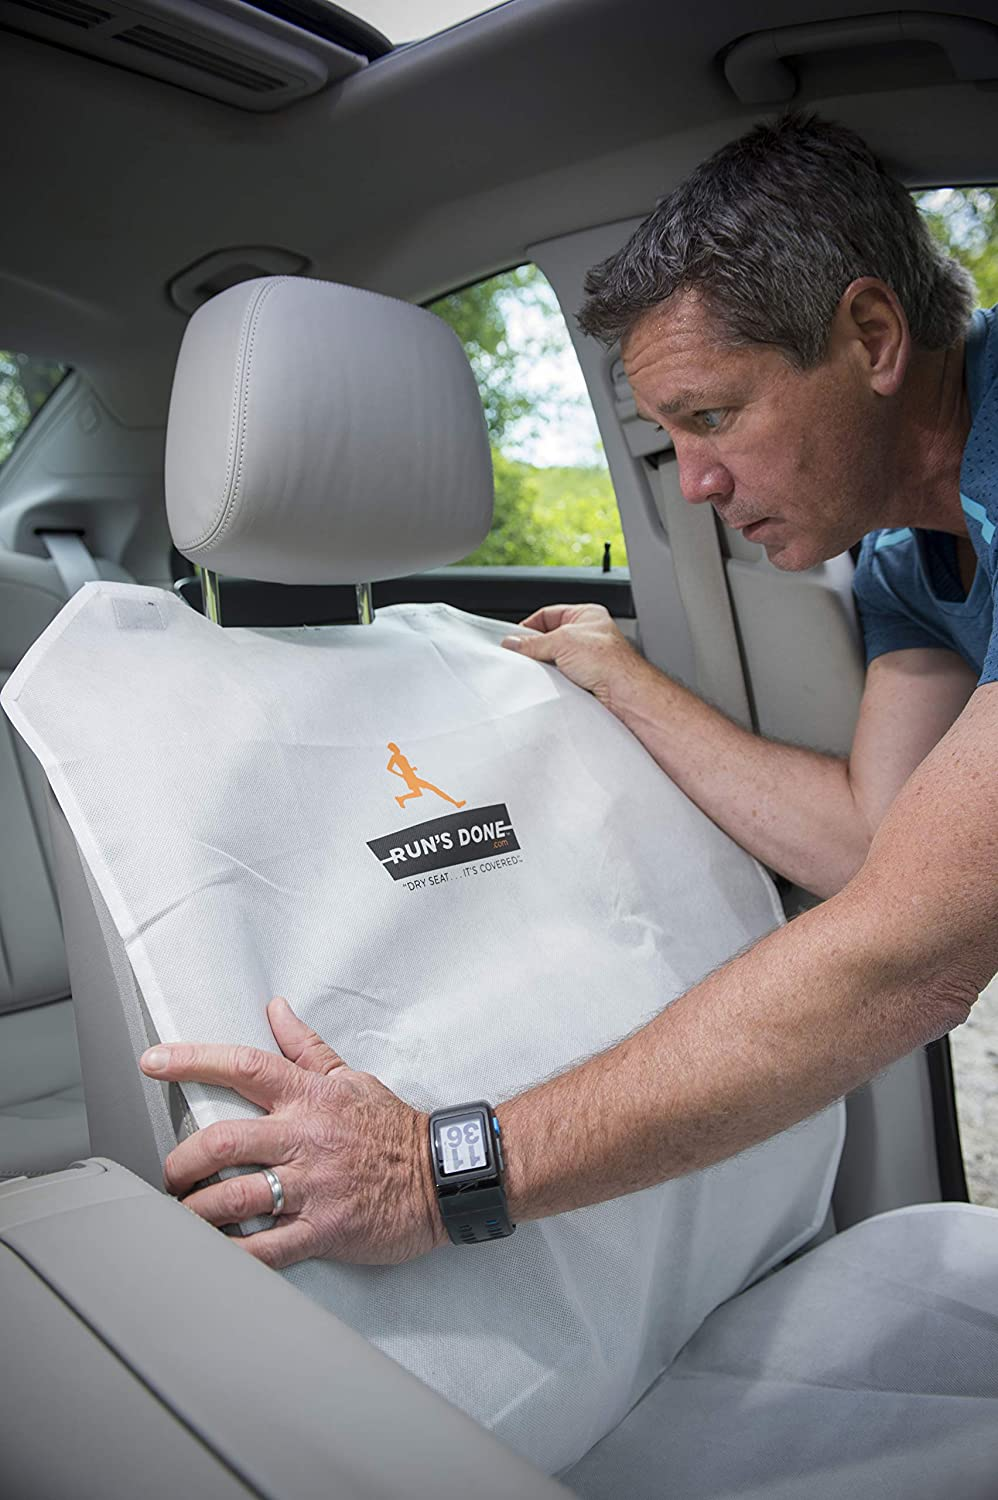 Runs Done Car Seat Cover Reusable Disposable Protective Hygienic 1